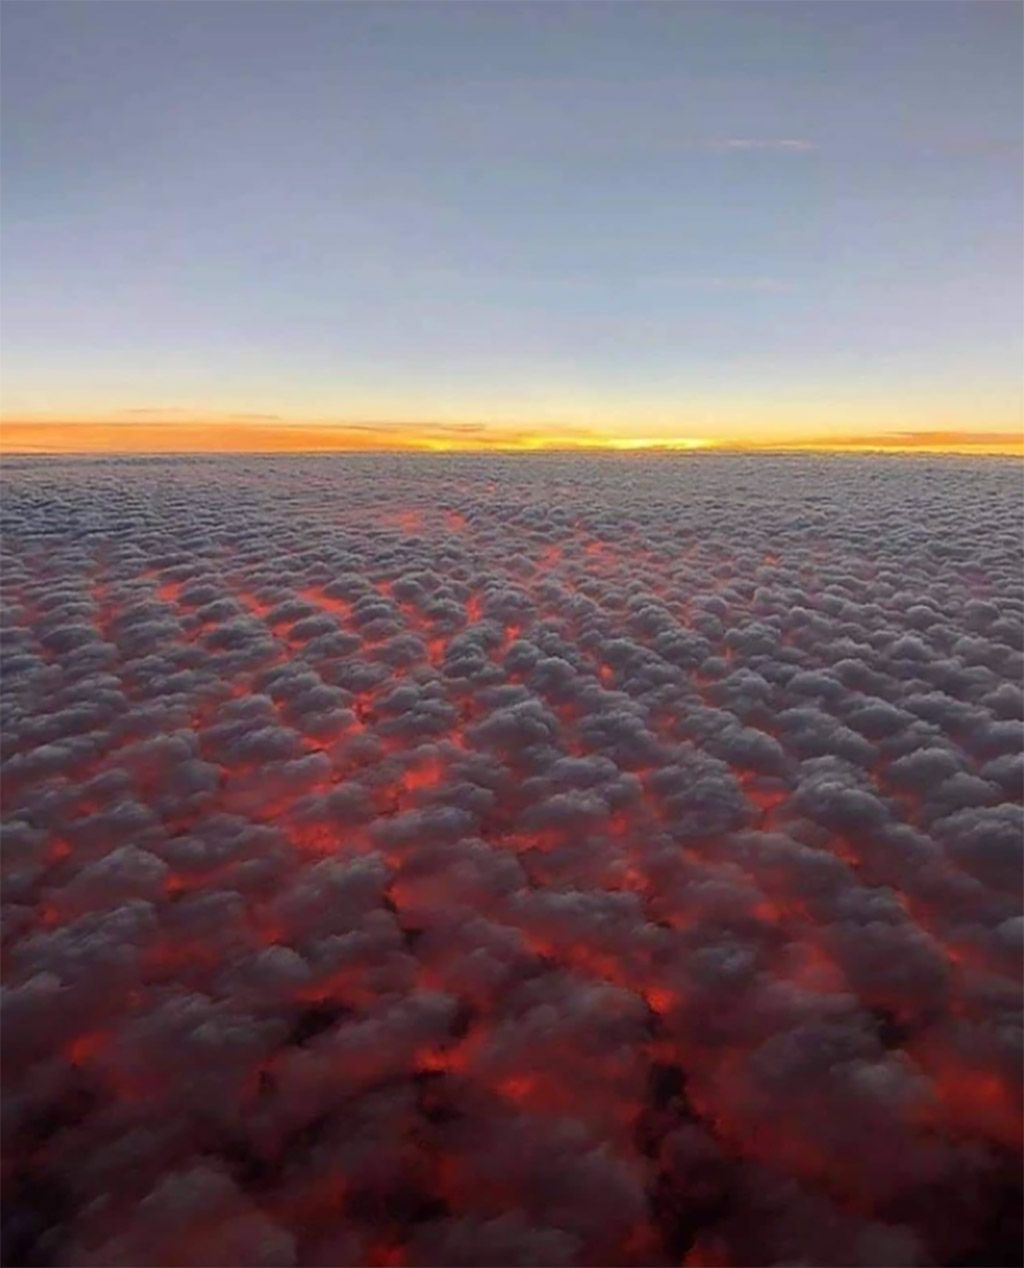 Honolulu Hawaii Above Clouds In 2020 Sunset Clouds Above The Clouds